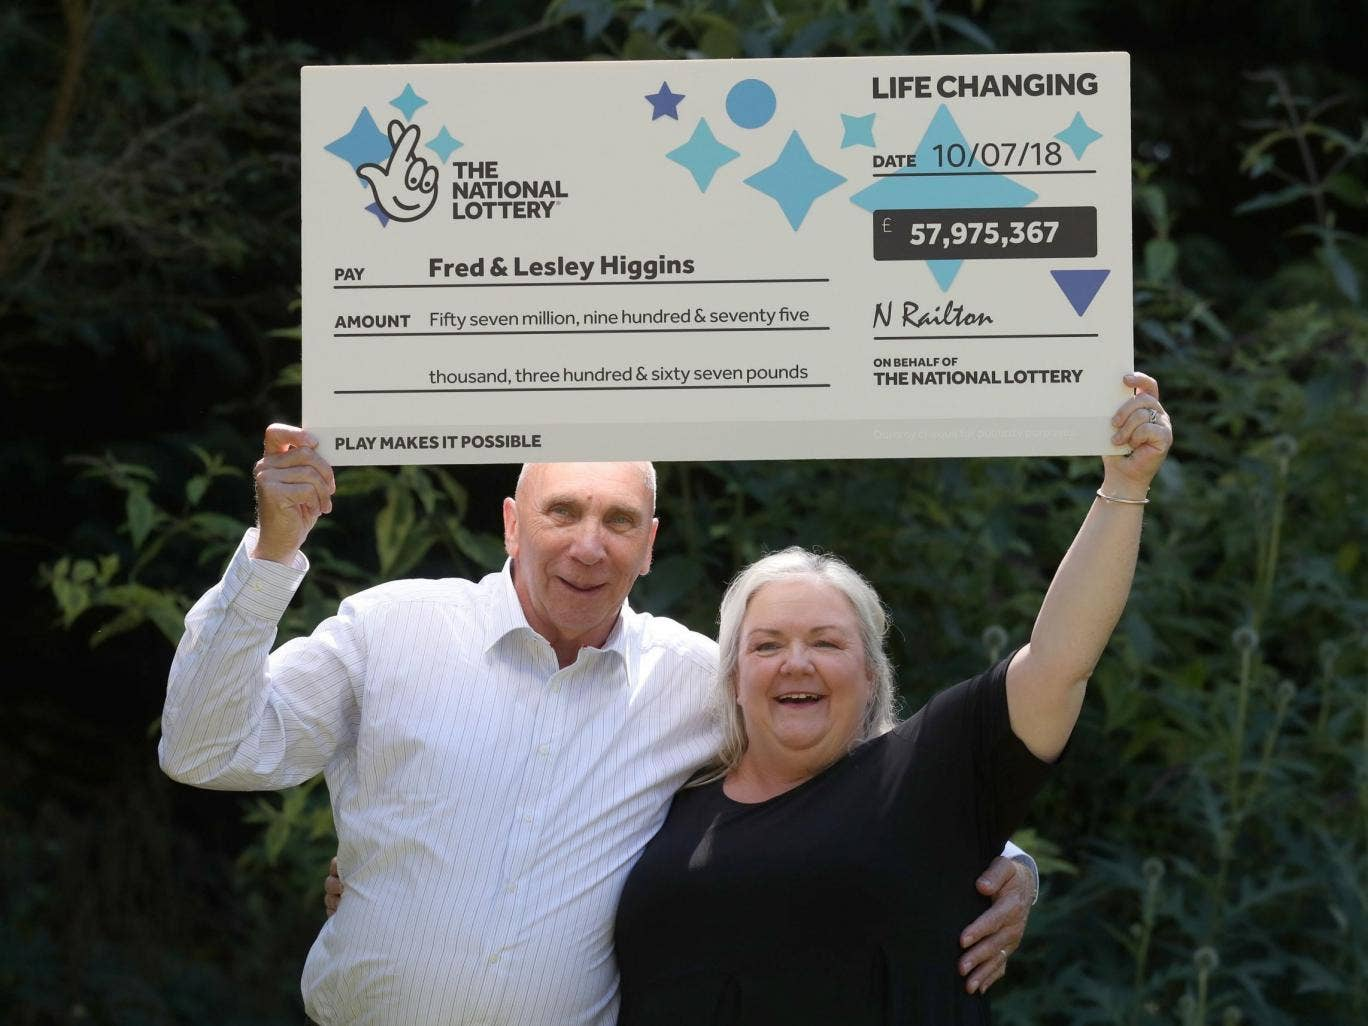 Sex Offender Wins 3 Million Lottery, Causes Debate advise